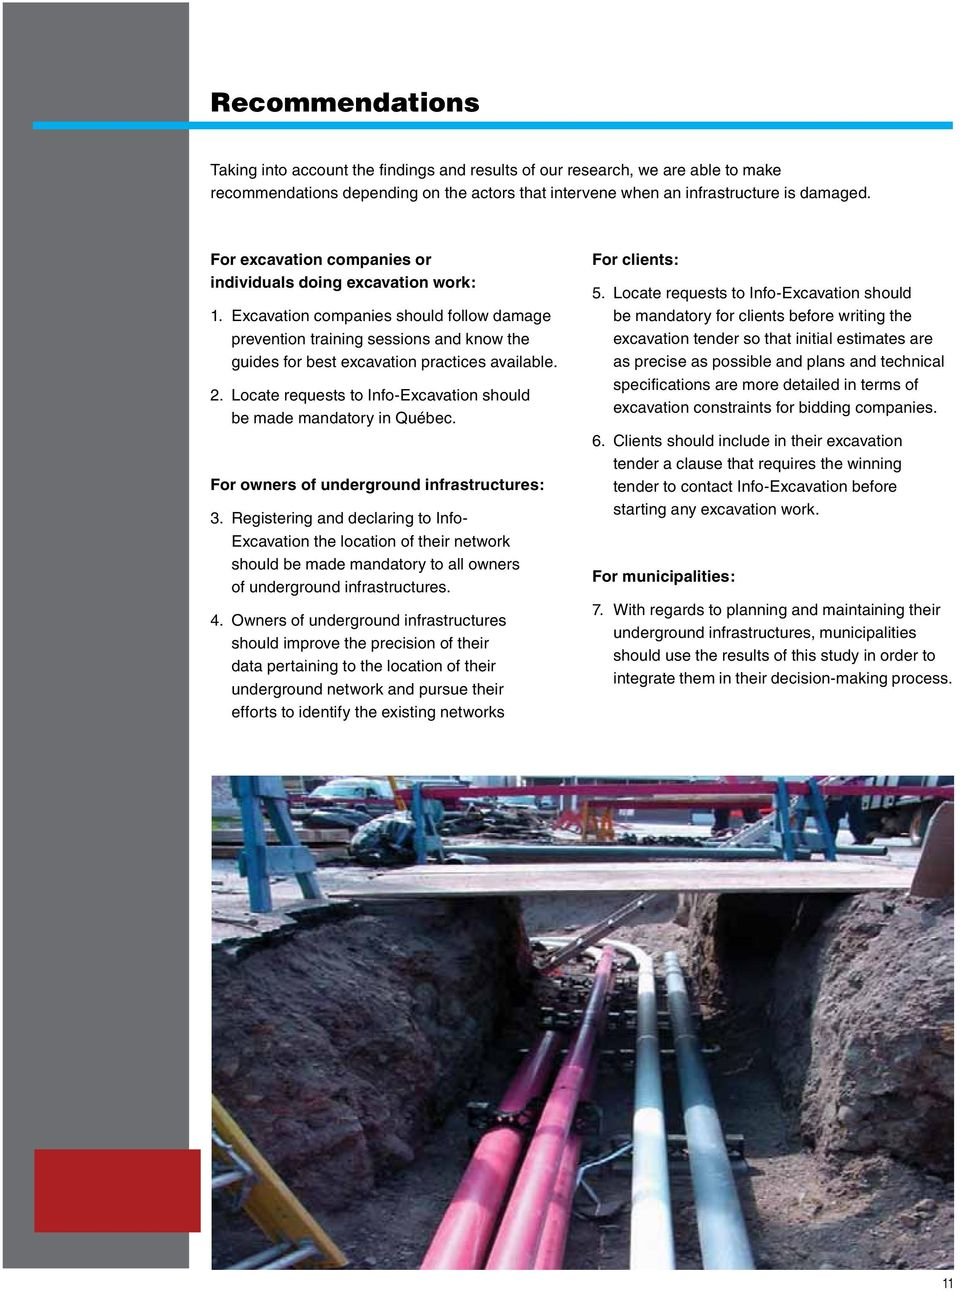 Locate requests to Info-Excavation should be made mandatory in Québec. For owners of underground infrastructures: 3.